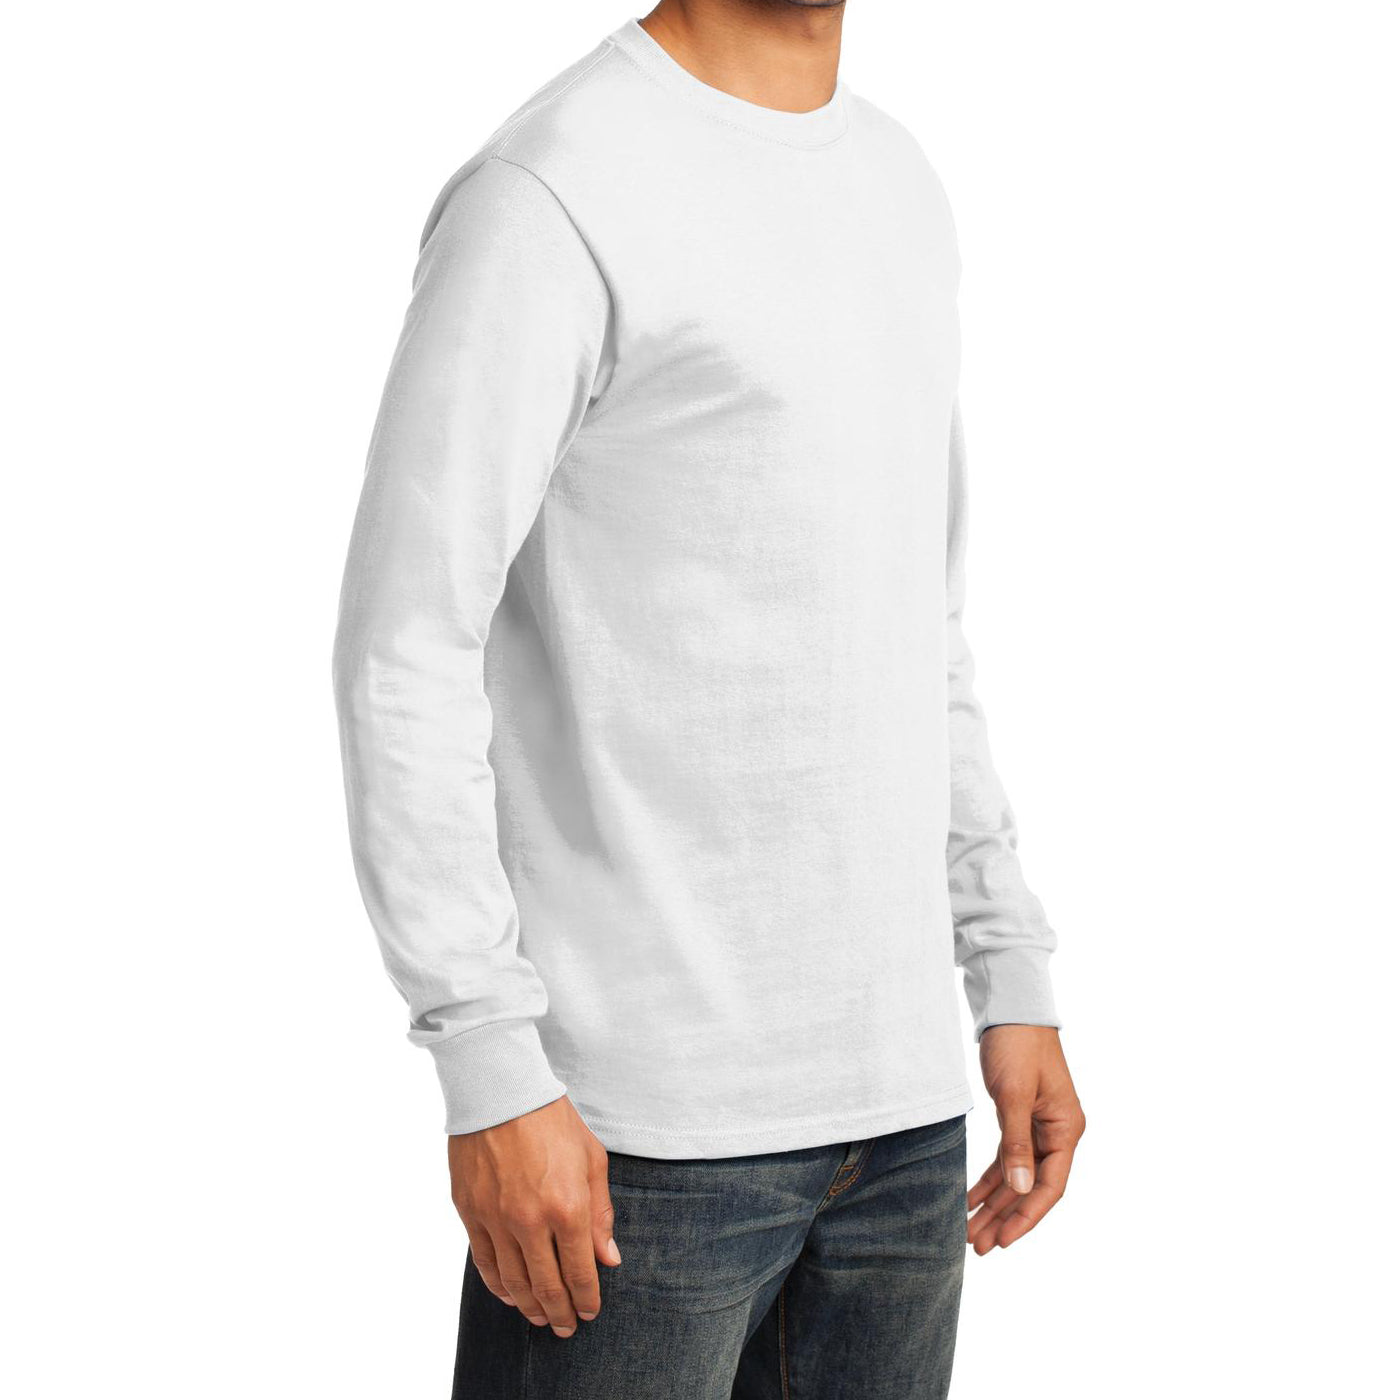 Men's Long Sleeve Essential Tee - White - Side